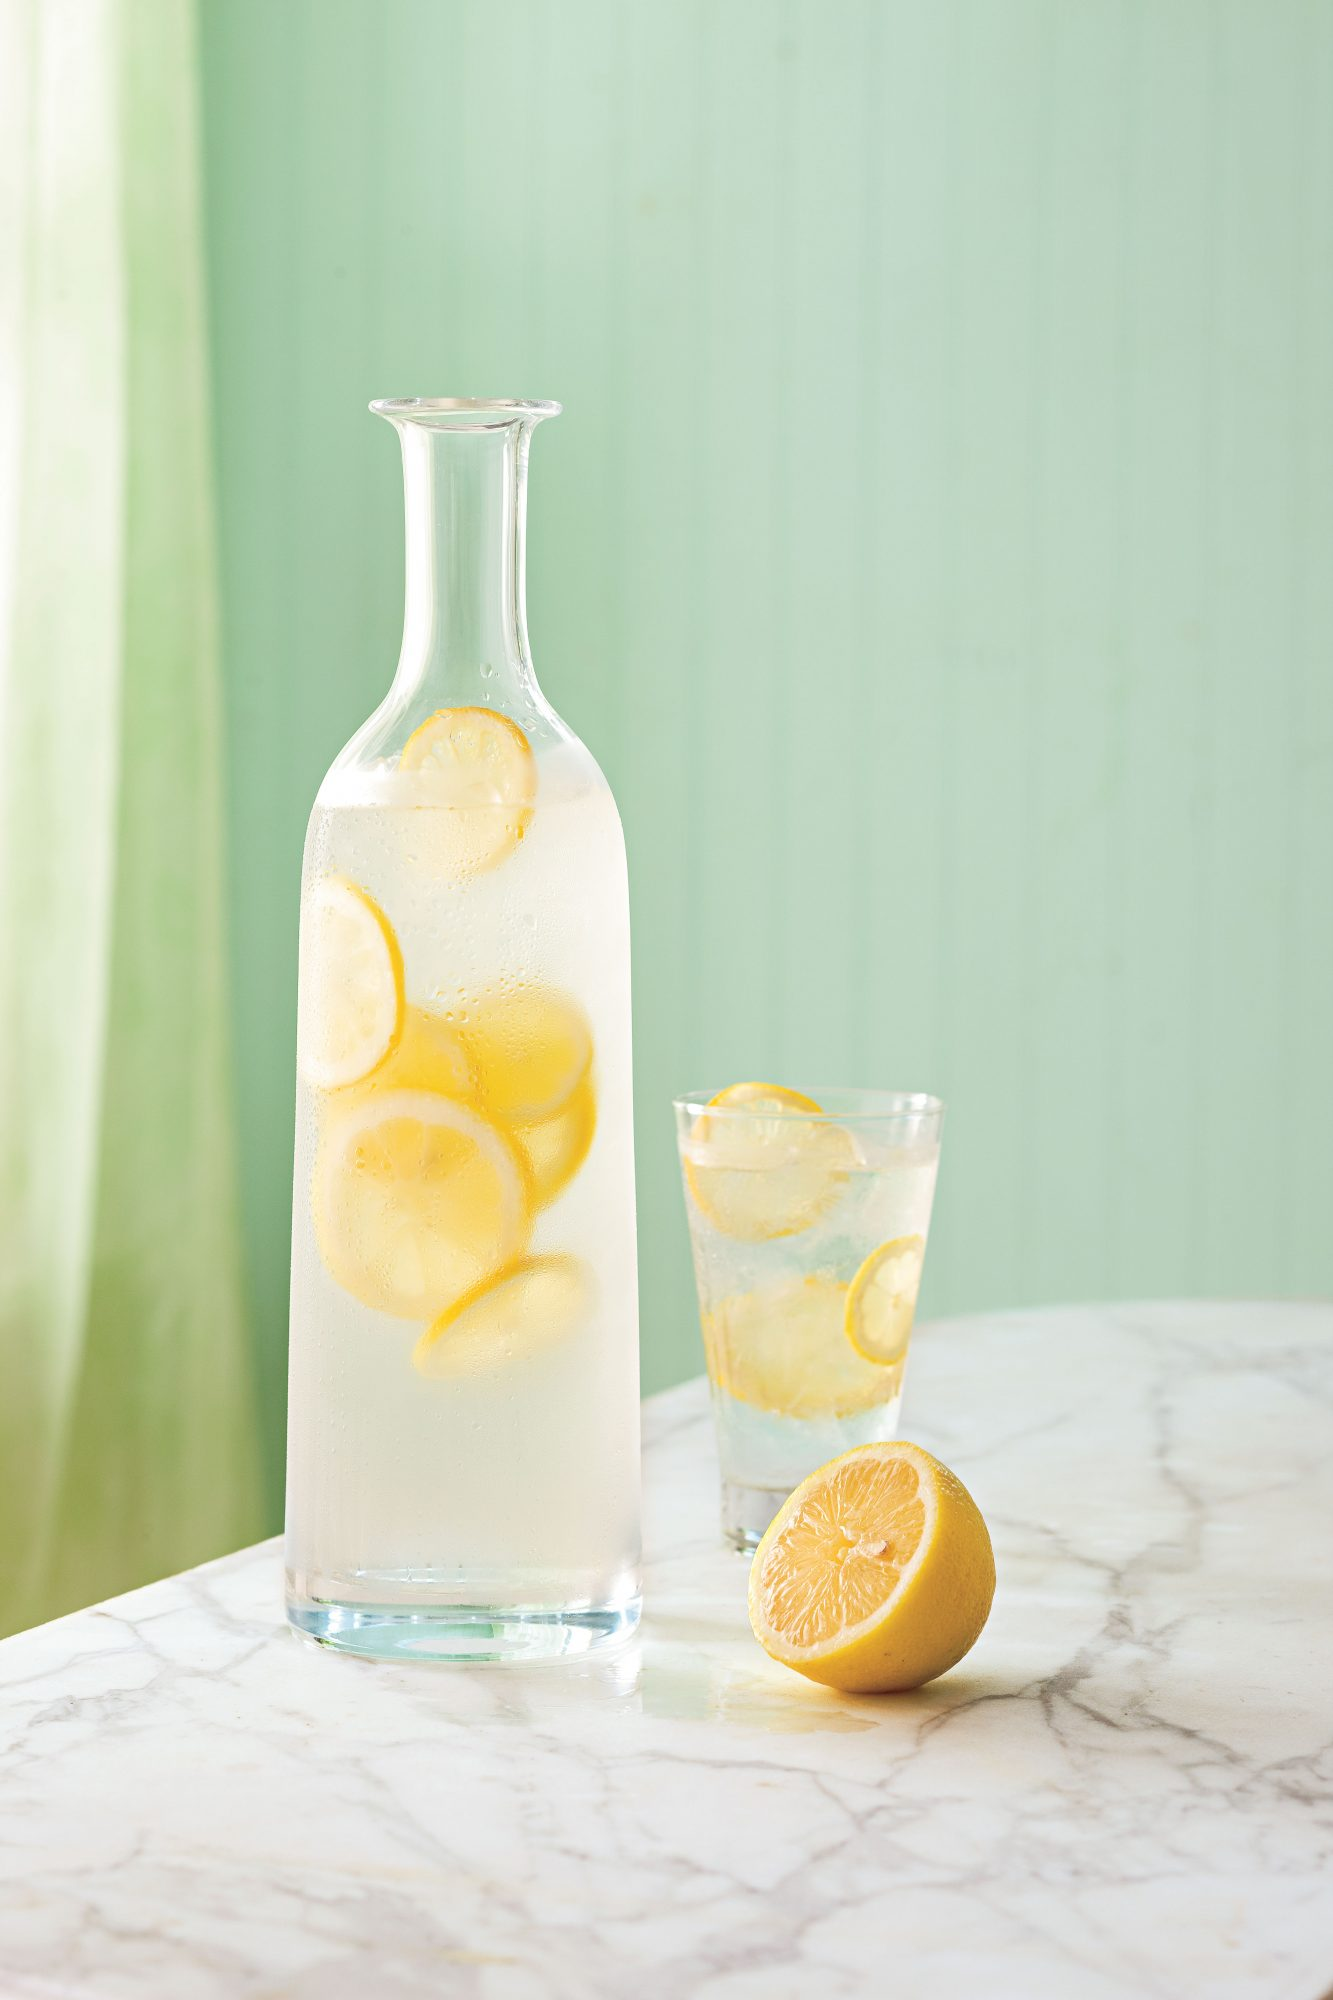 How To Stay Cool in Summer Heat - Southern Living